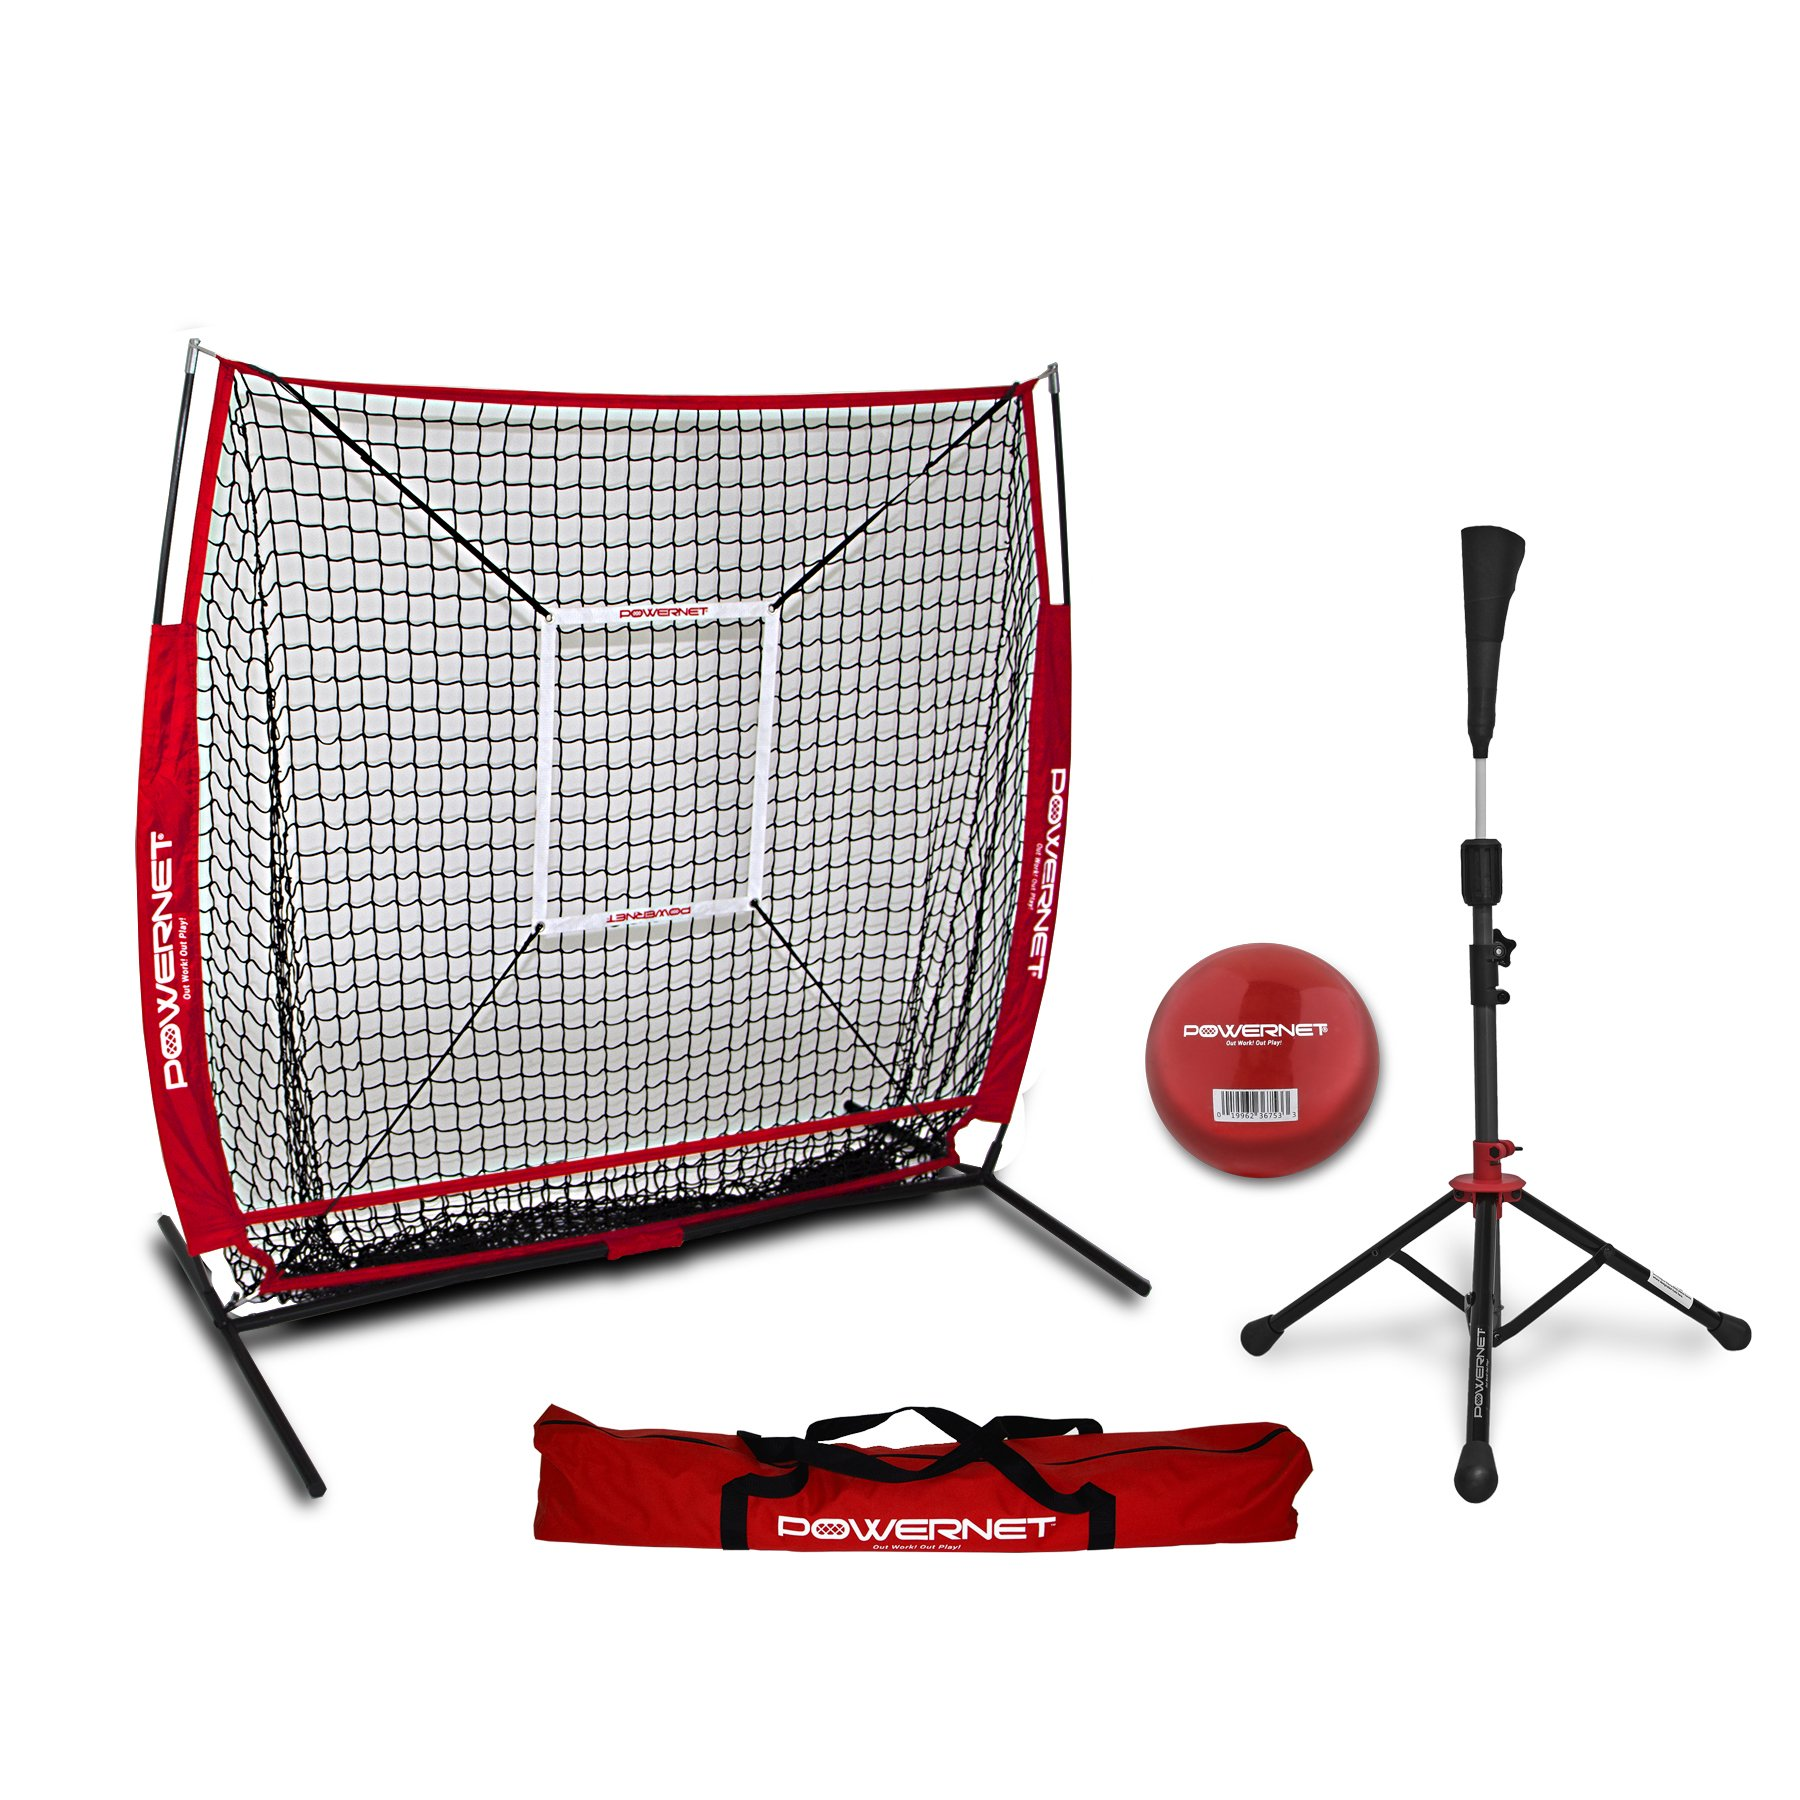 PowerNet 5x5 Practice Net + Deluxe Tee + Strike Zone + Weighted Training Ball Bundle (Red) | Baseball Softball Pitching Batting Coaching Pack | Work on Pitch Accuracy | Build Plate Confidence